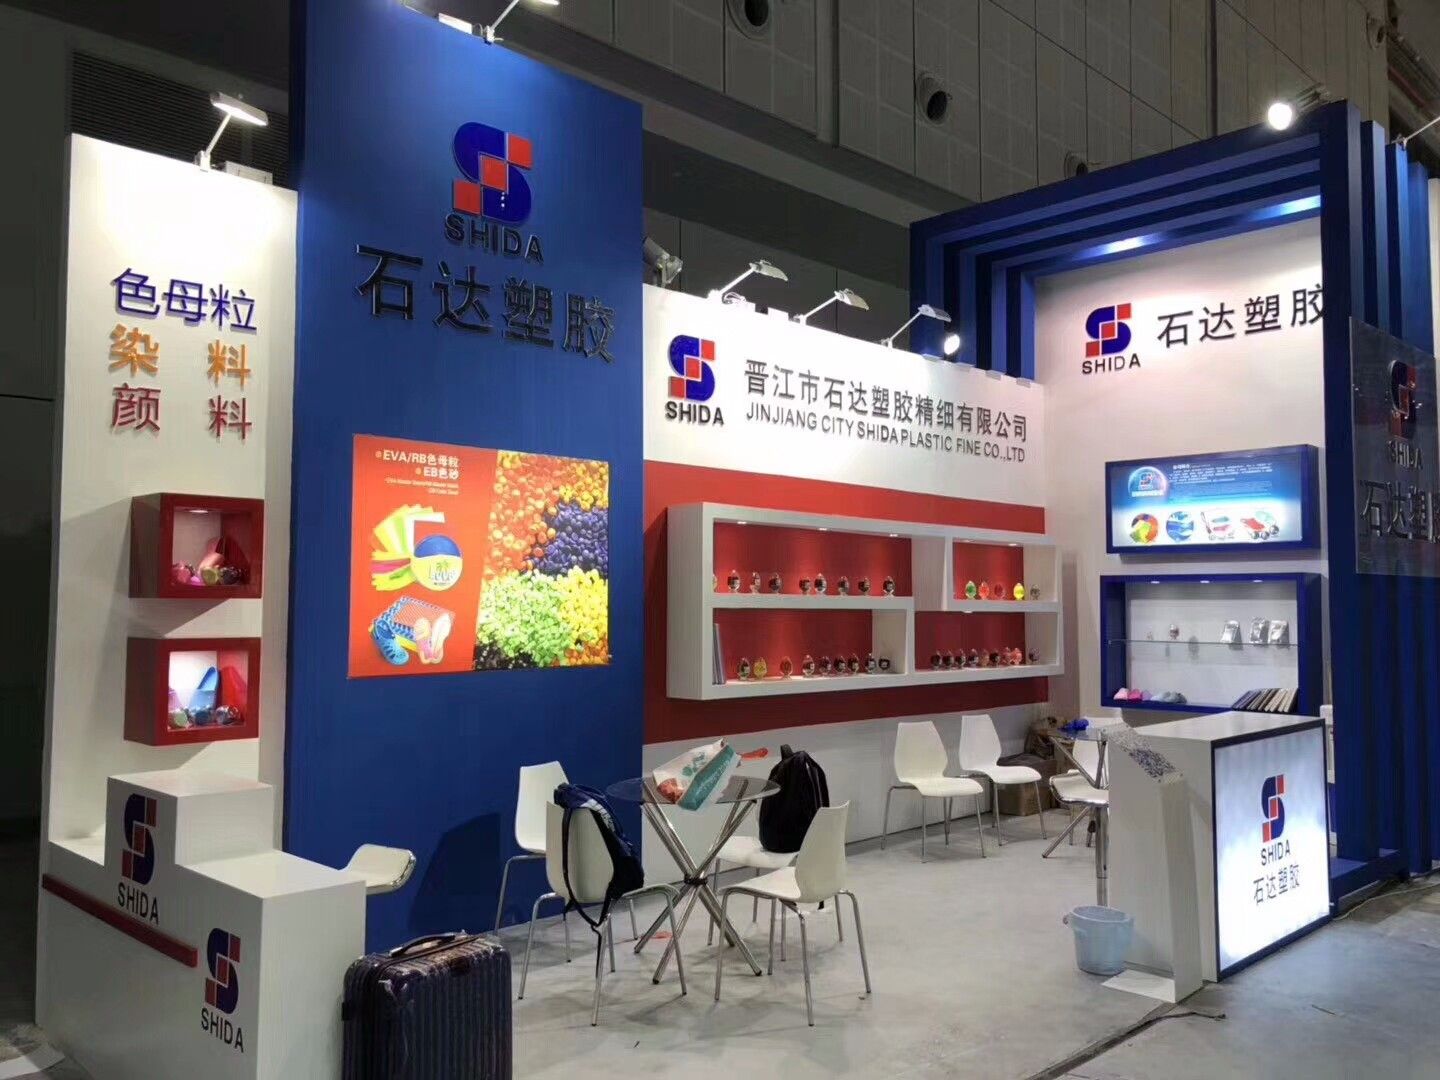 Jinjiang City Shi Da Plastic Attended the 32nd Chinaplas and Harvested